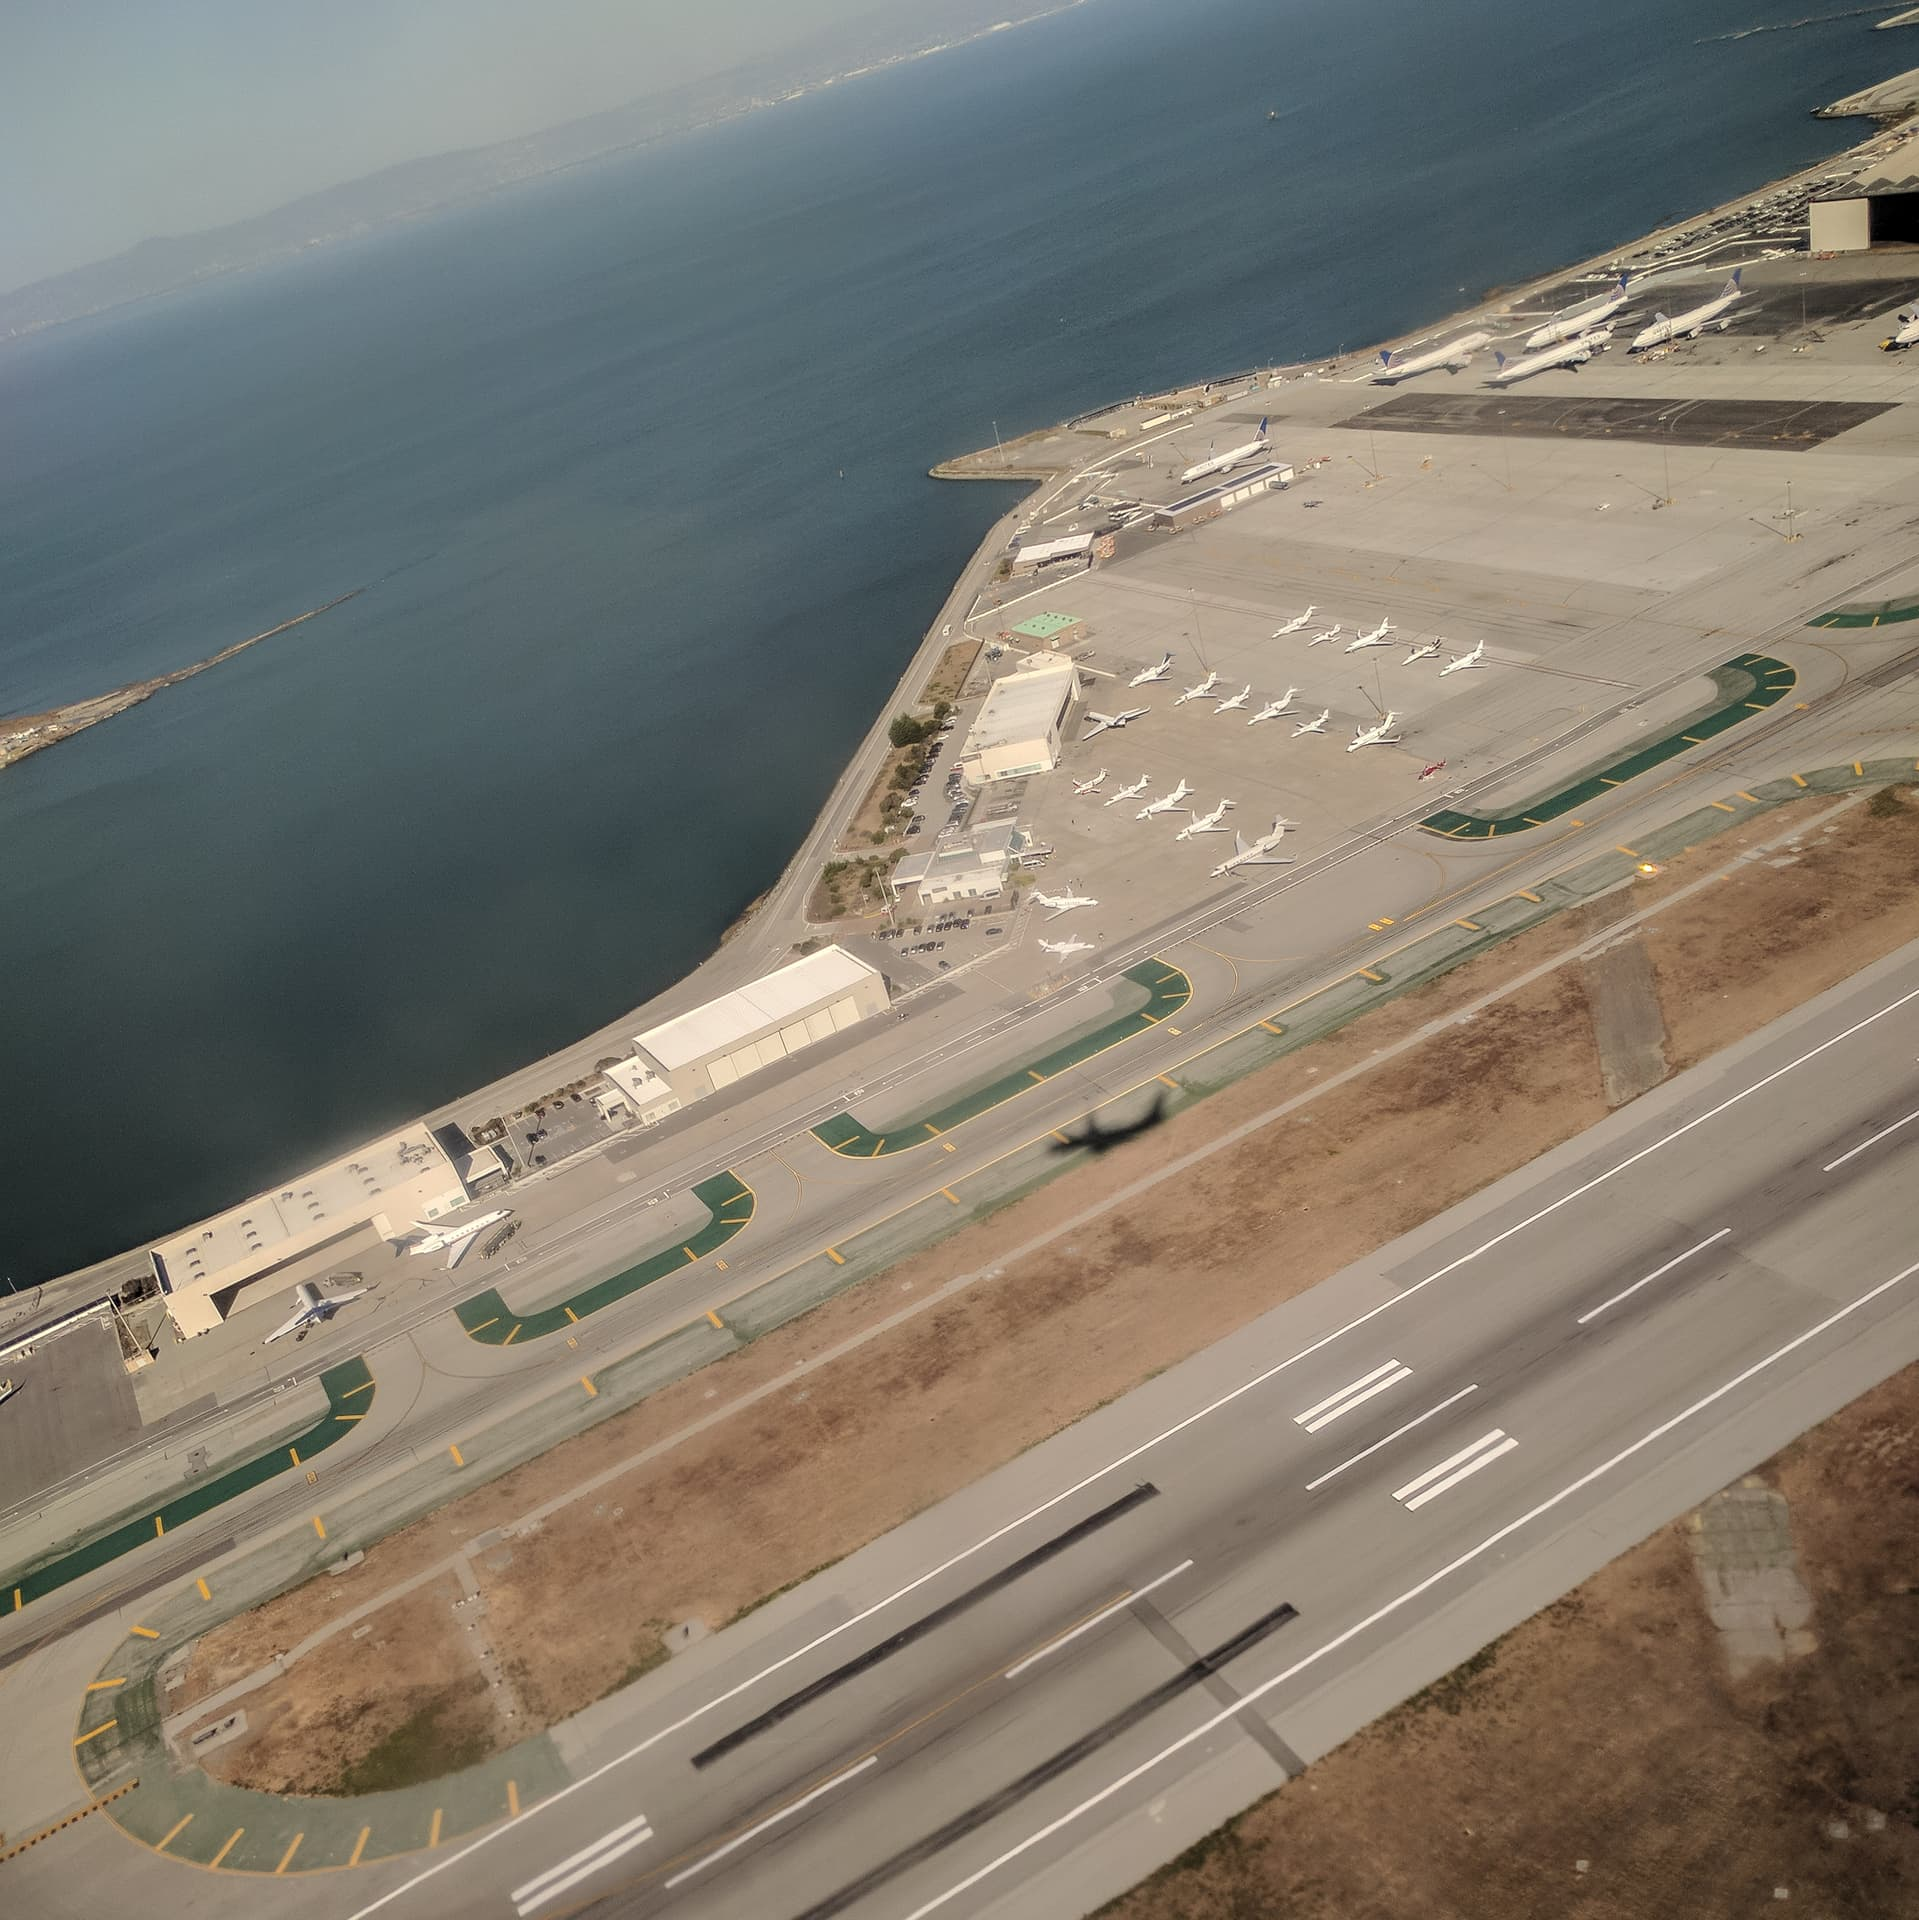 Runways and hangers at the San Francisco International Airport, as seen from a plane shortly after takeoff. San Francisco Bay can be seen in the background; the plane's shadow can still be distinctly seen near the center of the image.